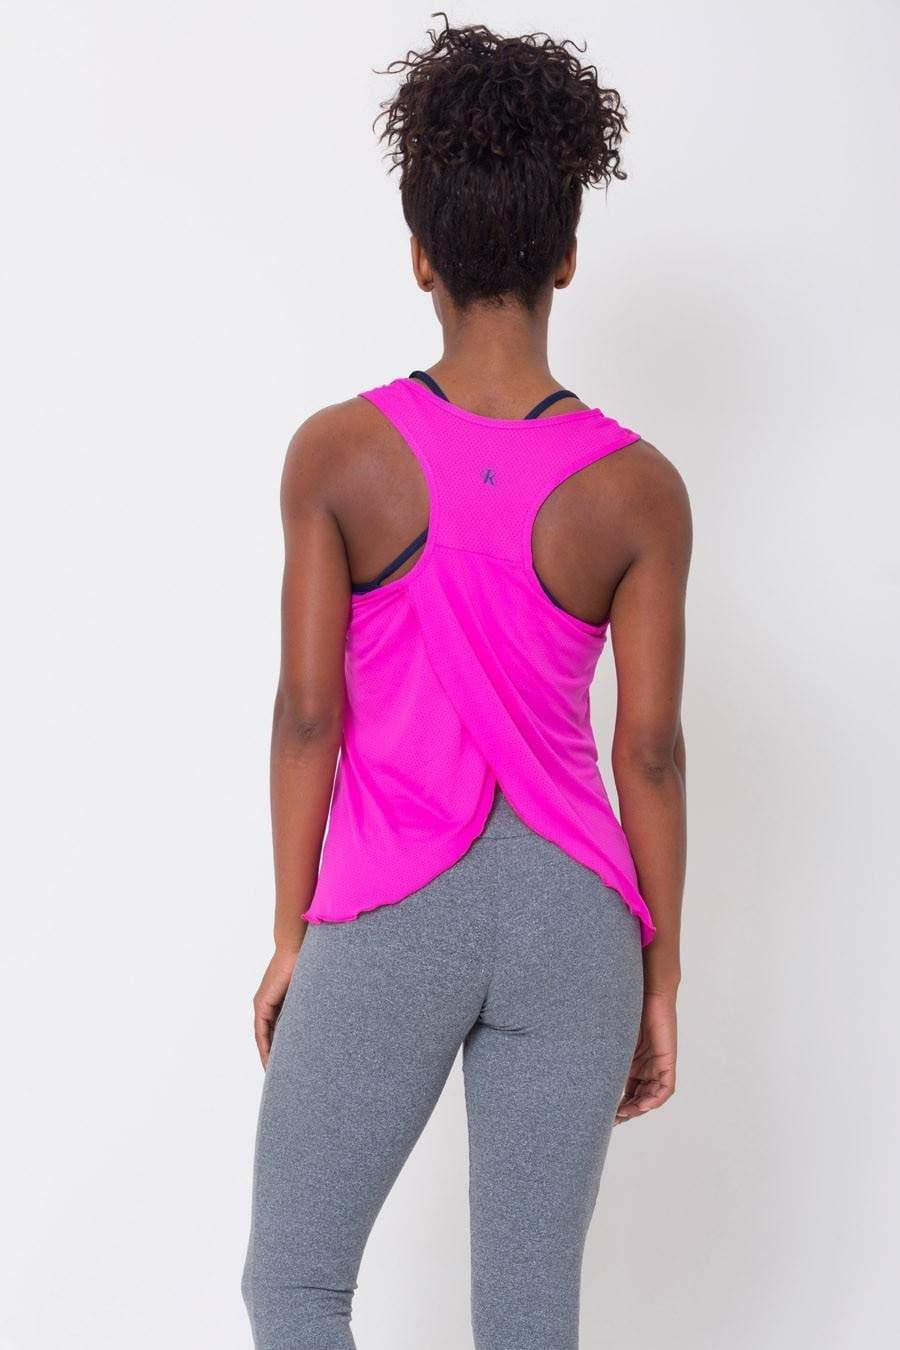 Pink Crossover Back Tank - Sam's Fitness Goods